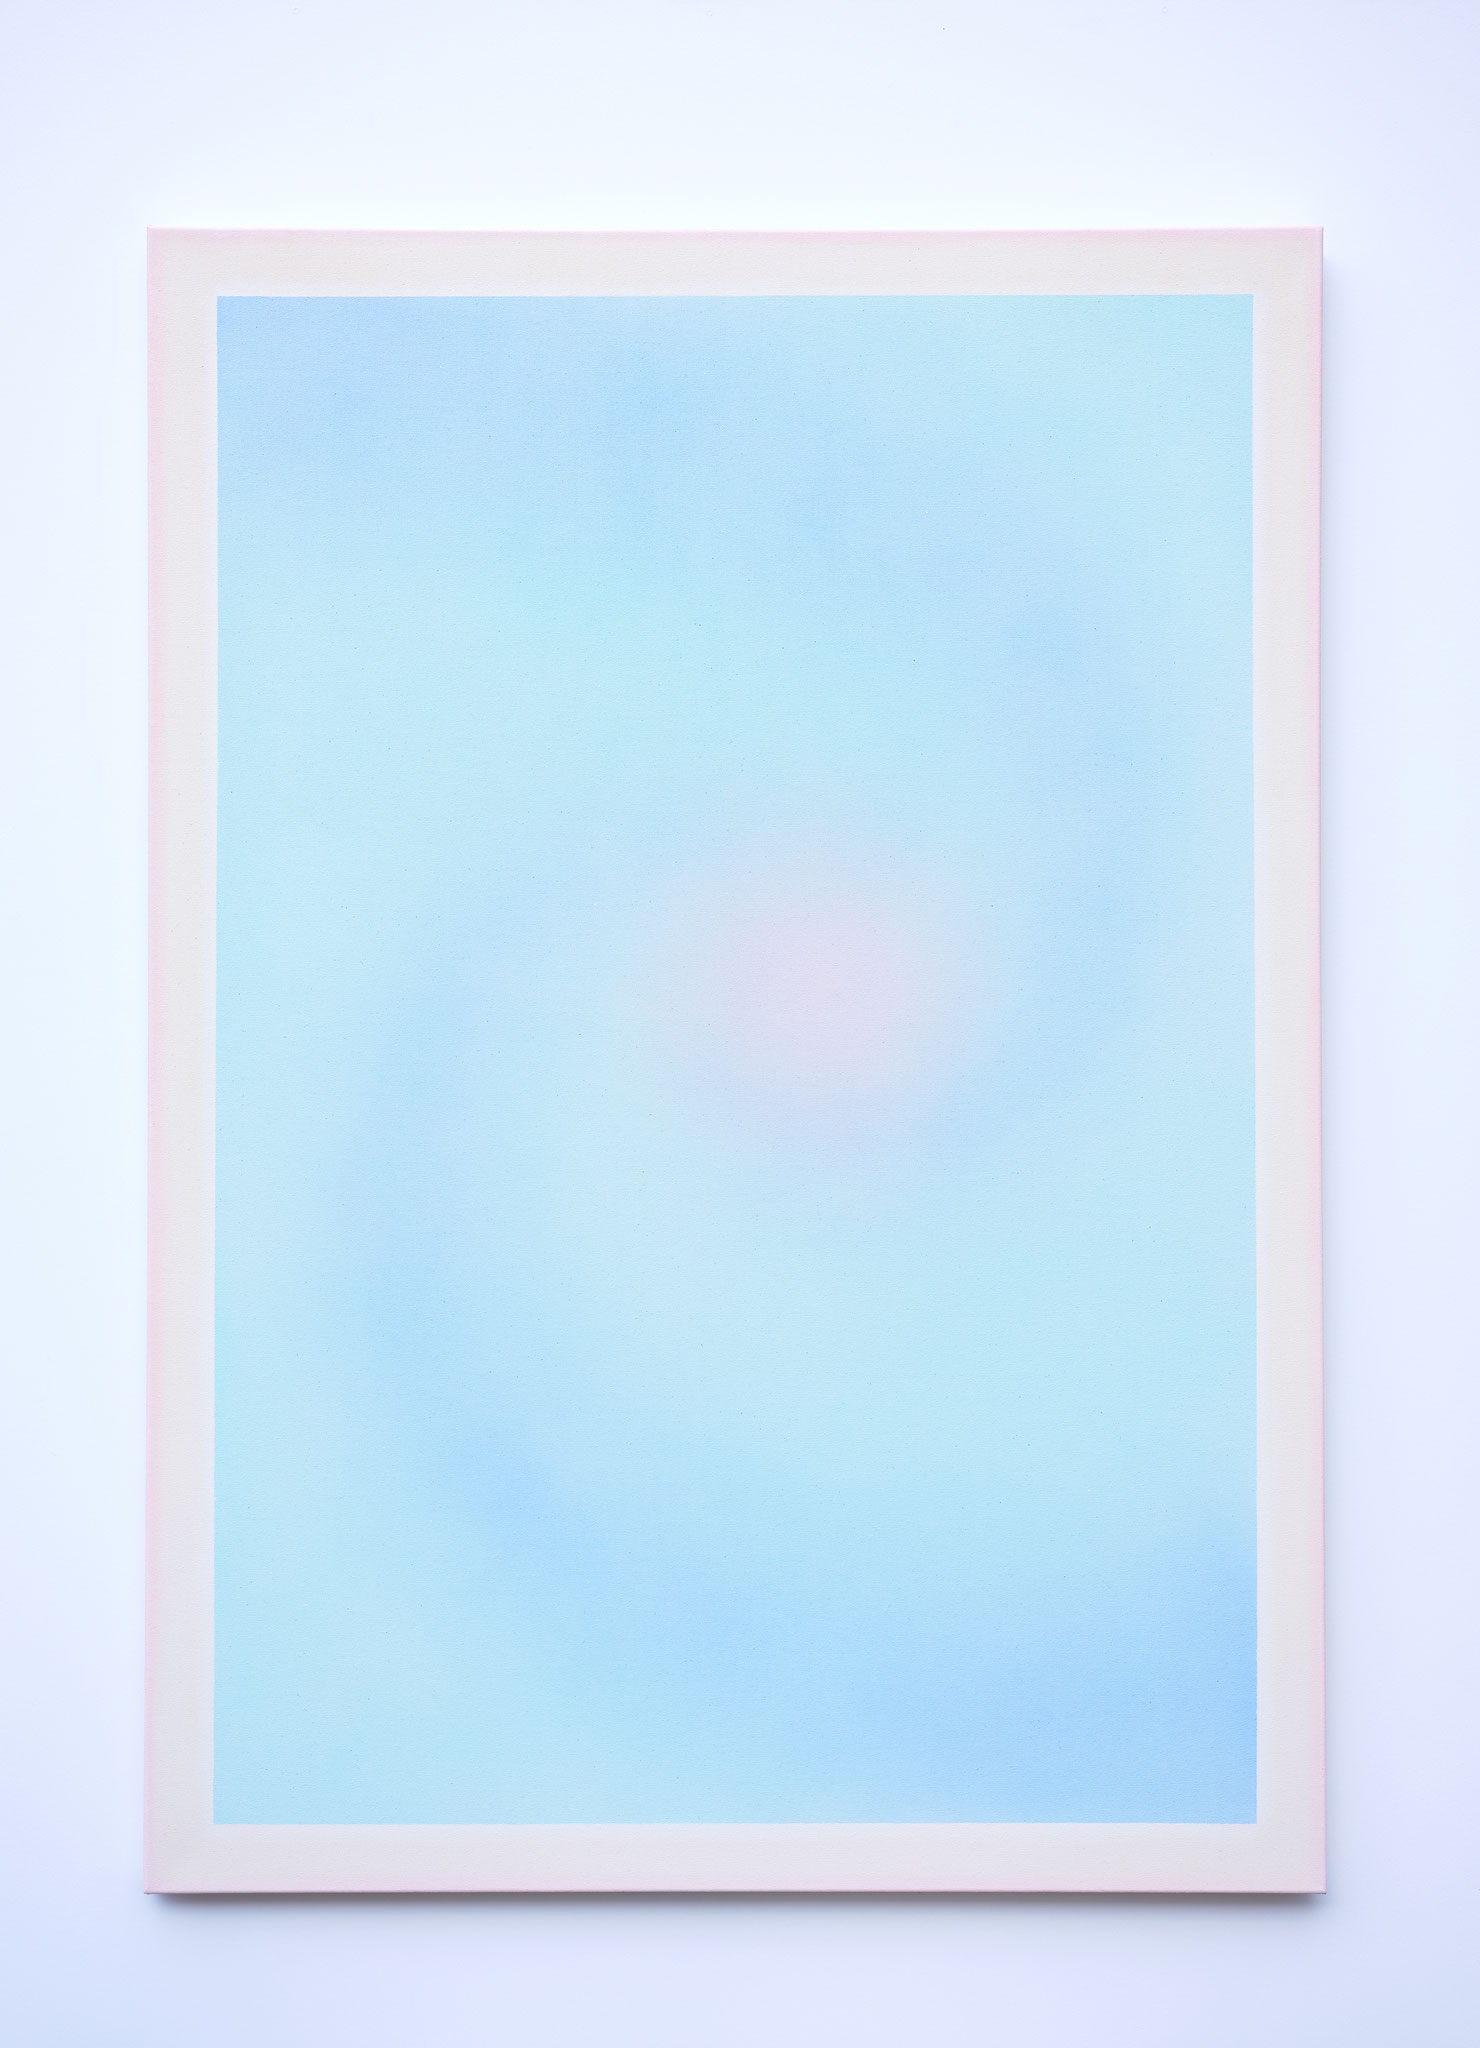 "Alina Birkner ""Untitled (Love is what made me/ Babyblue)"" 2019, 170x120 cm, Acrylic on Canvas"